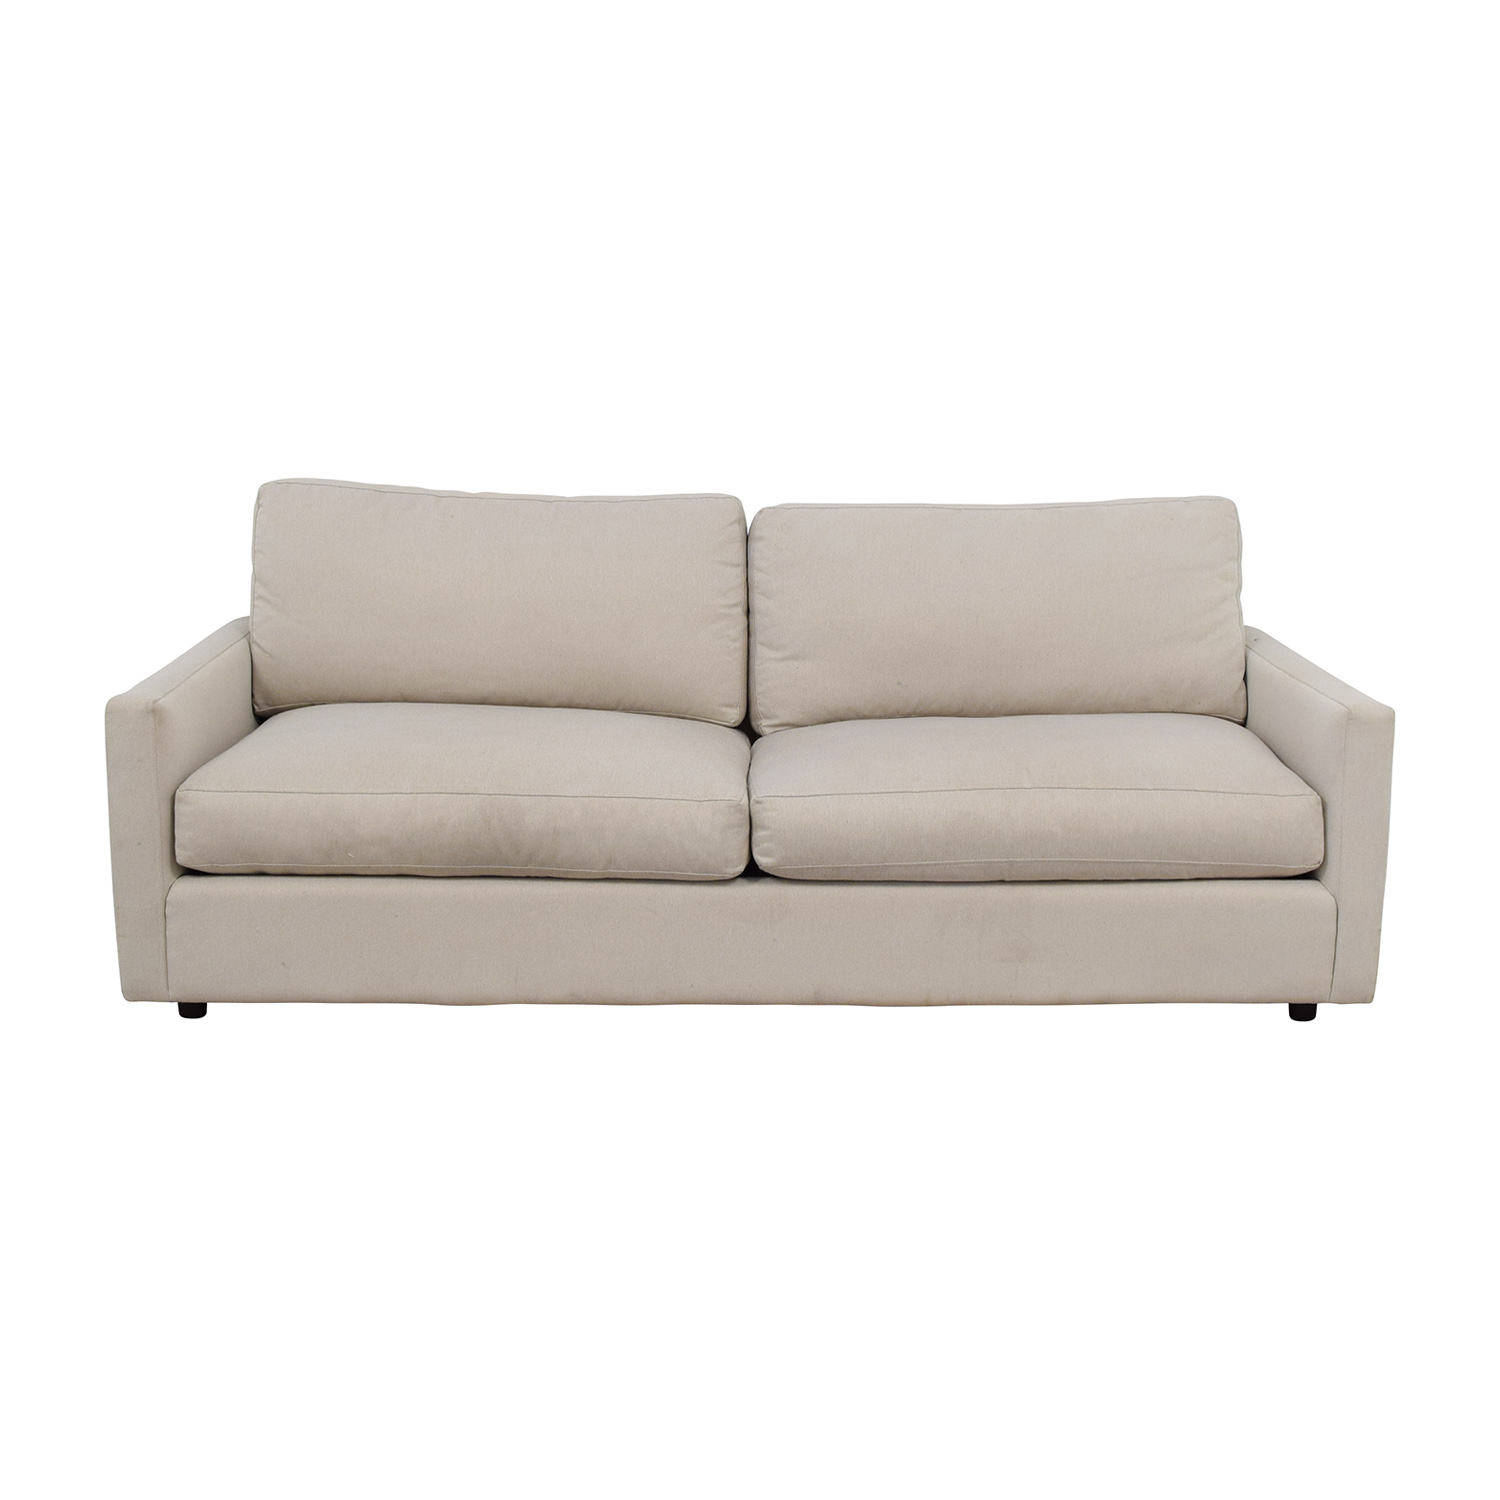 Room & Board Room & Board Easton Beige Two-Cushion Sofa price